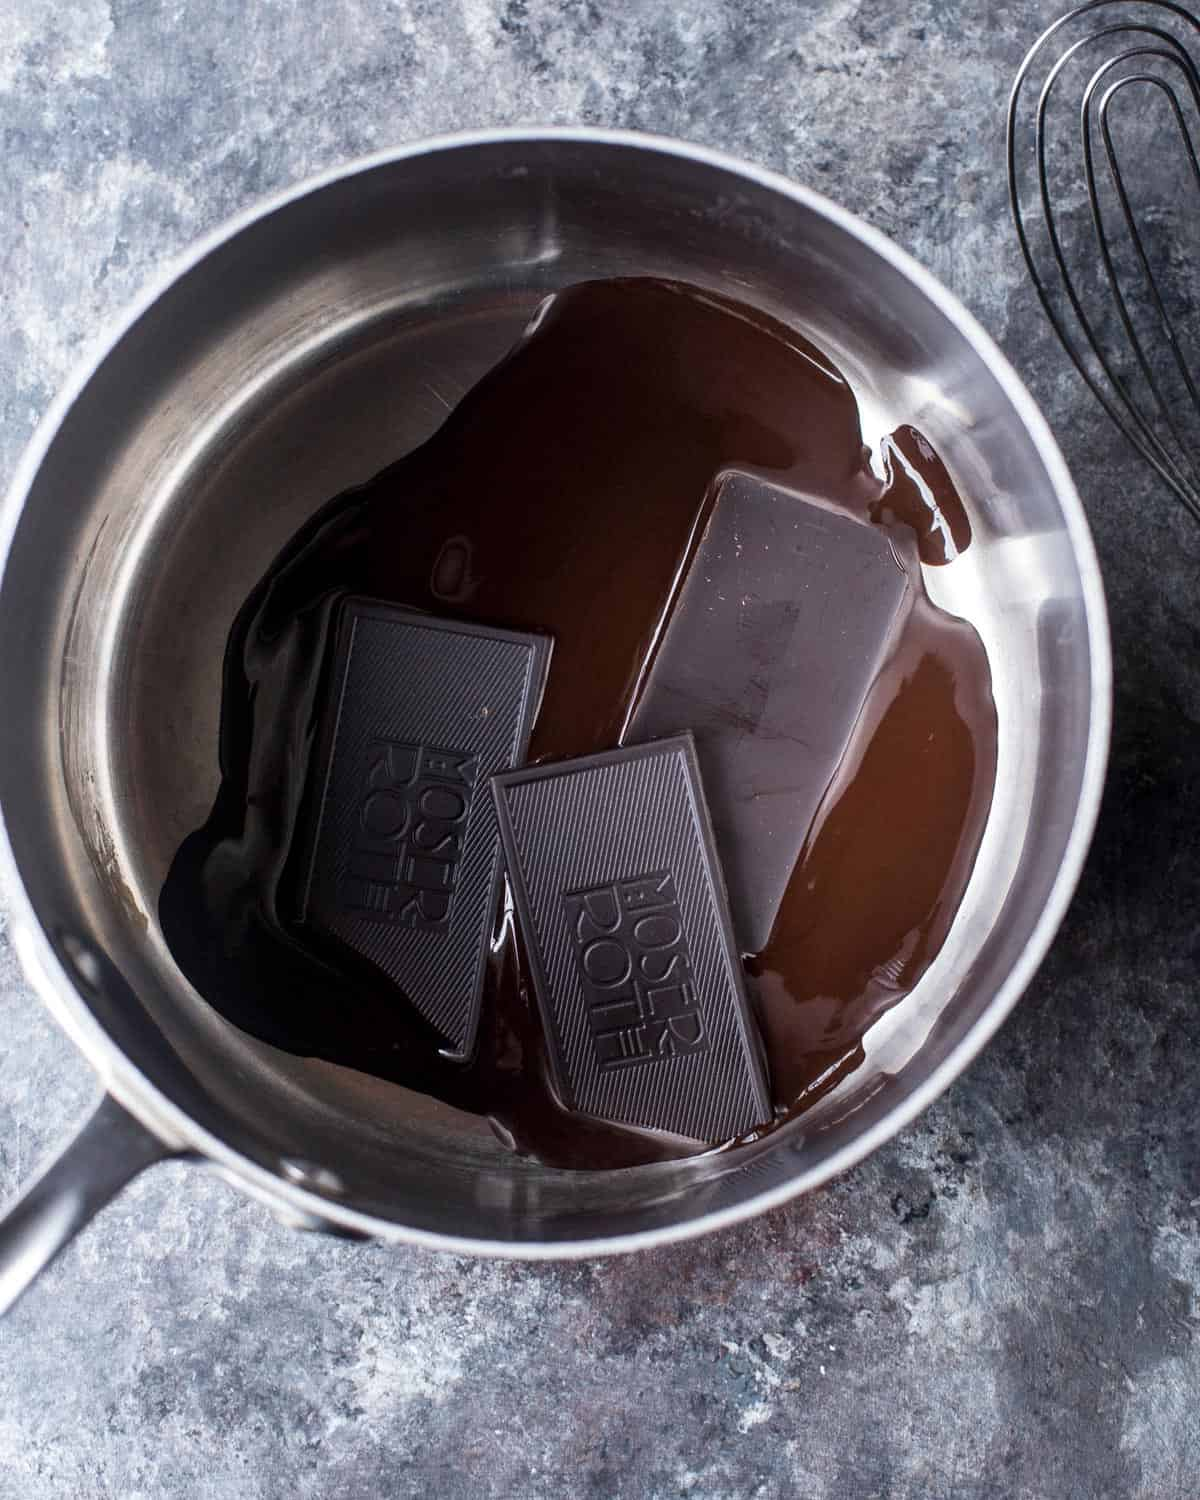 melting chocolate in a saucepan